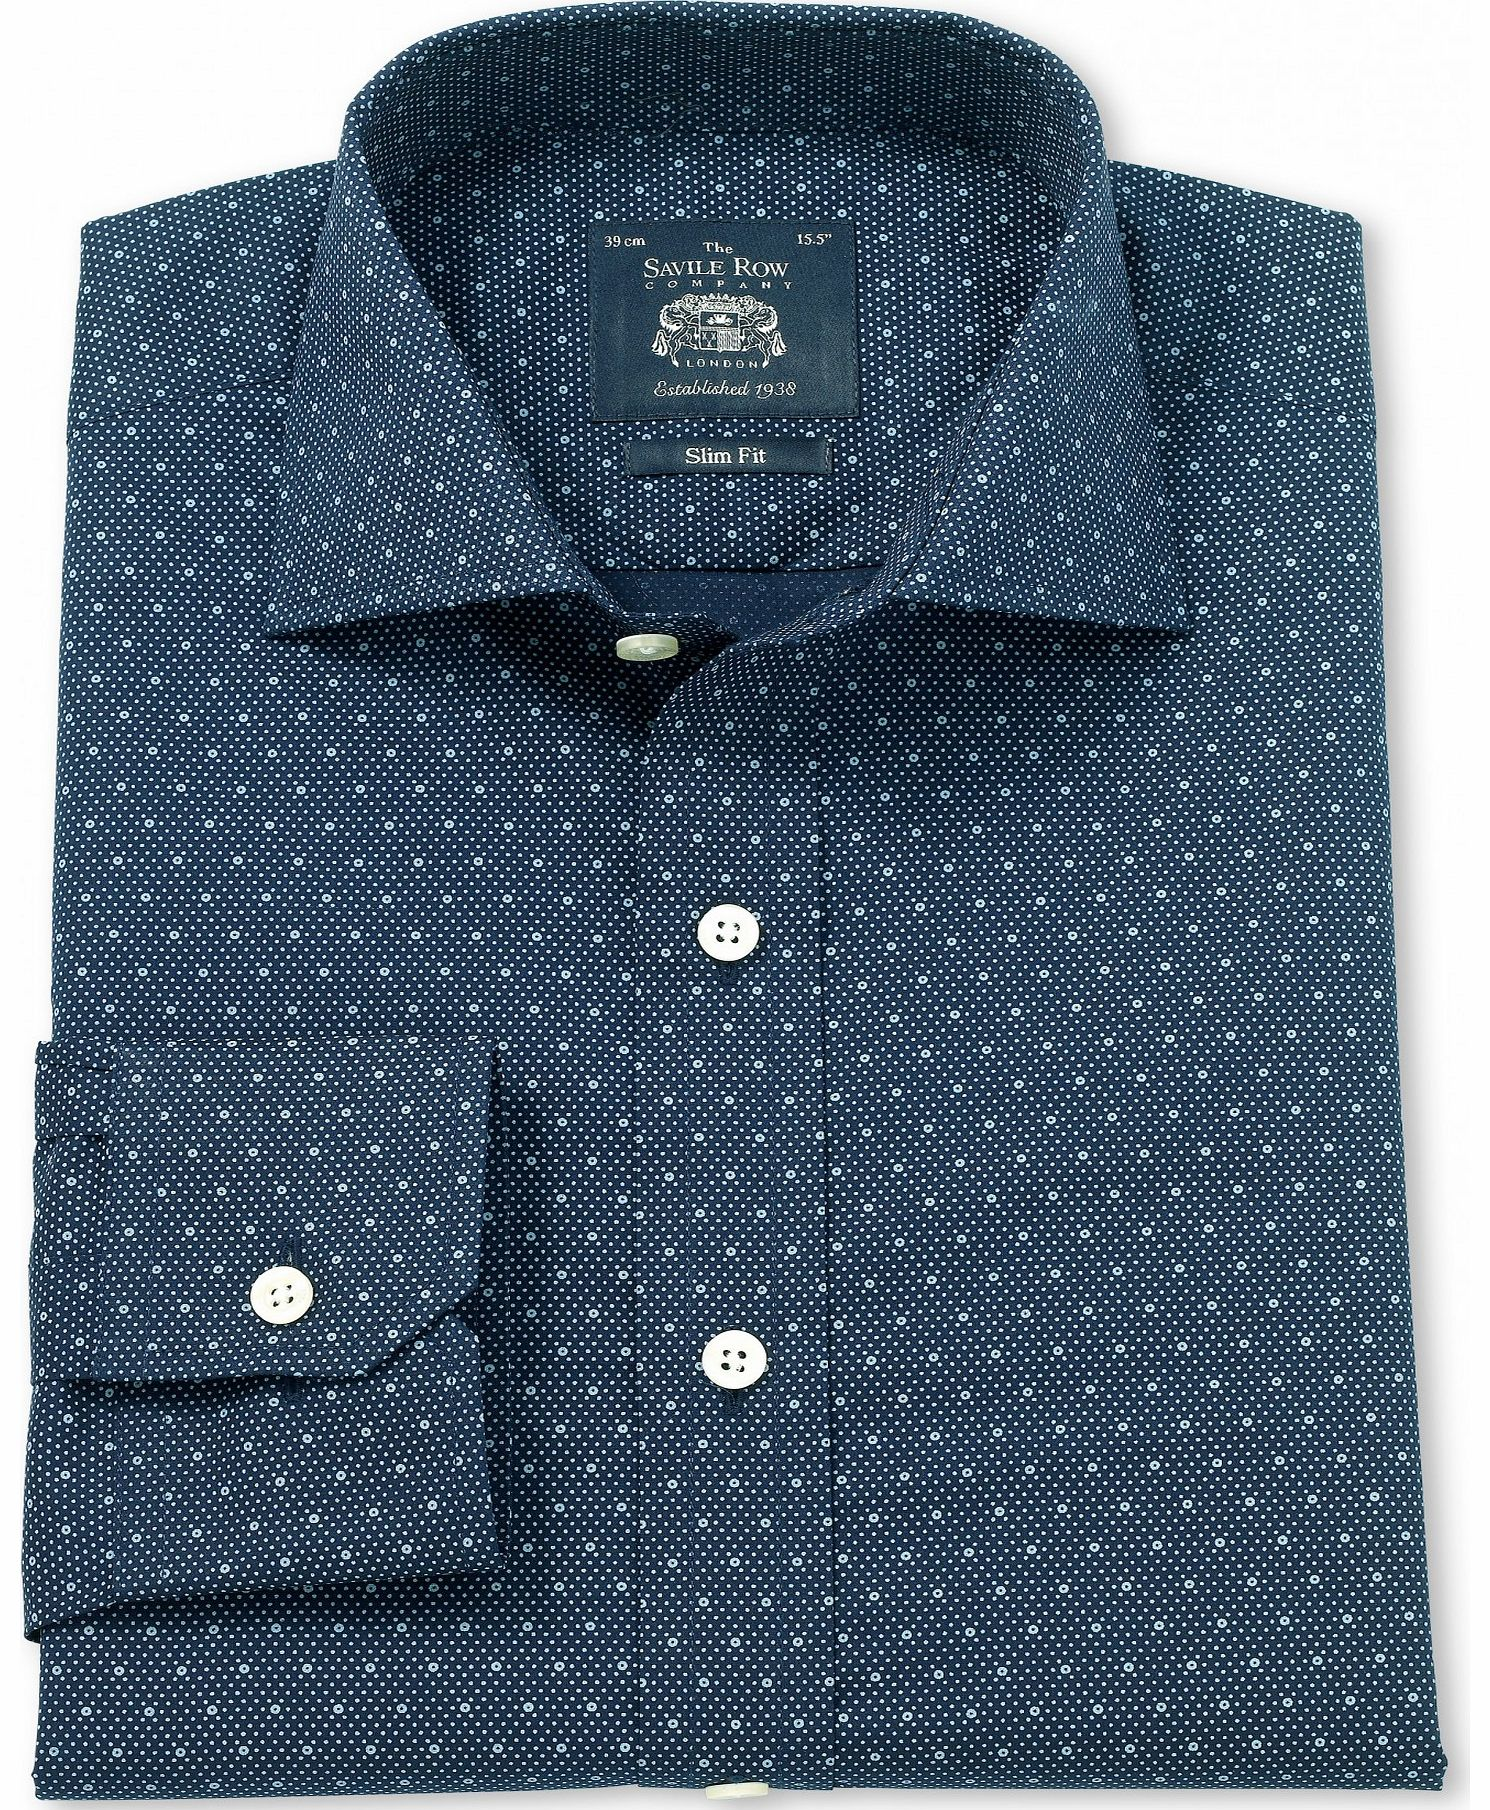 savile row company navy blue printed poplin slim fit shirt